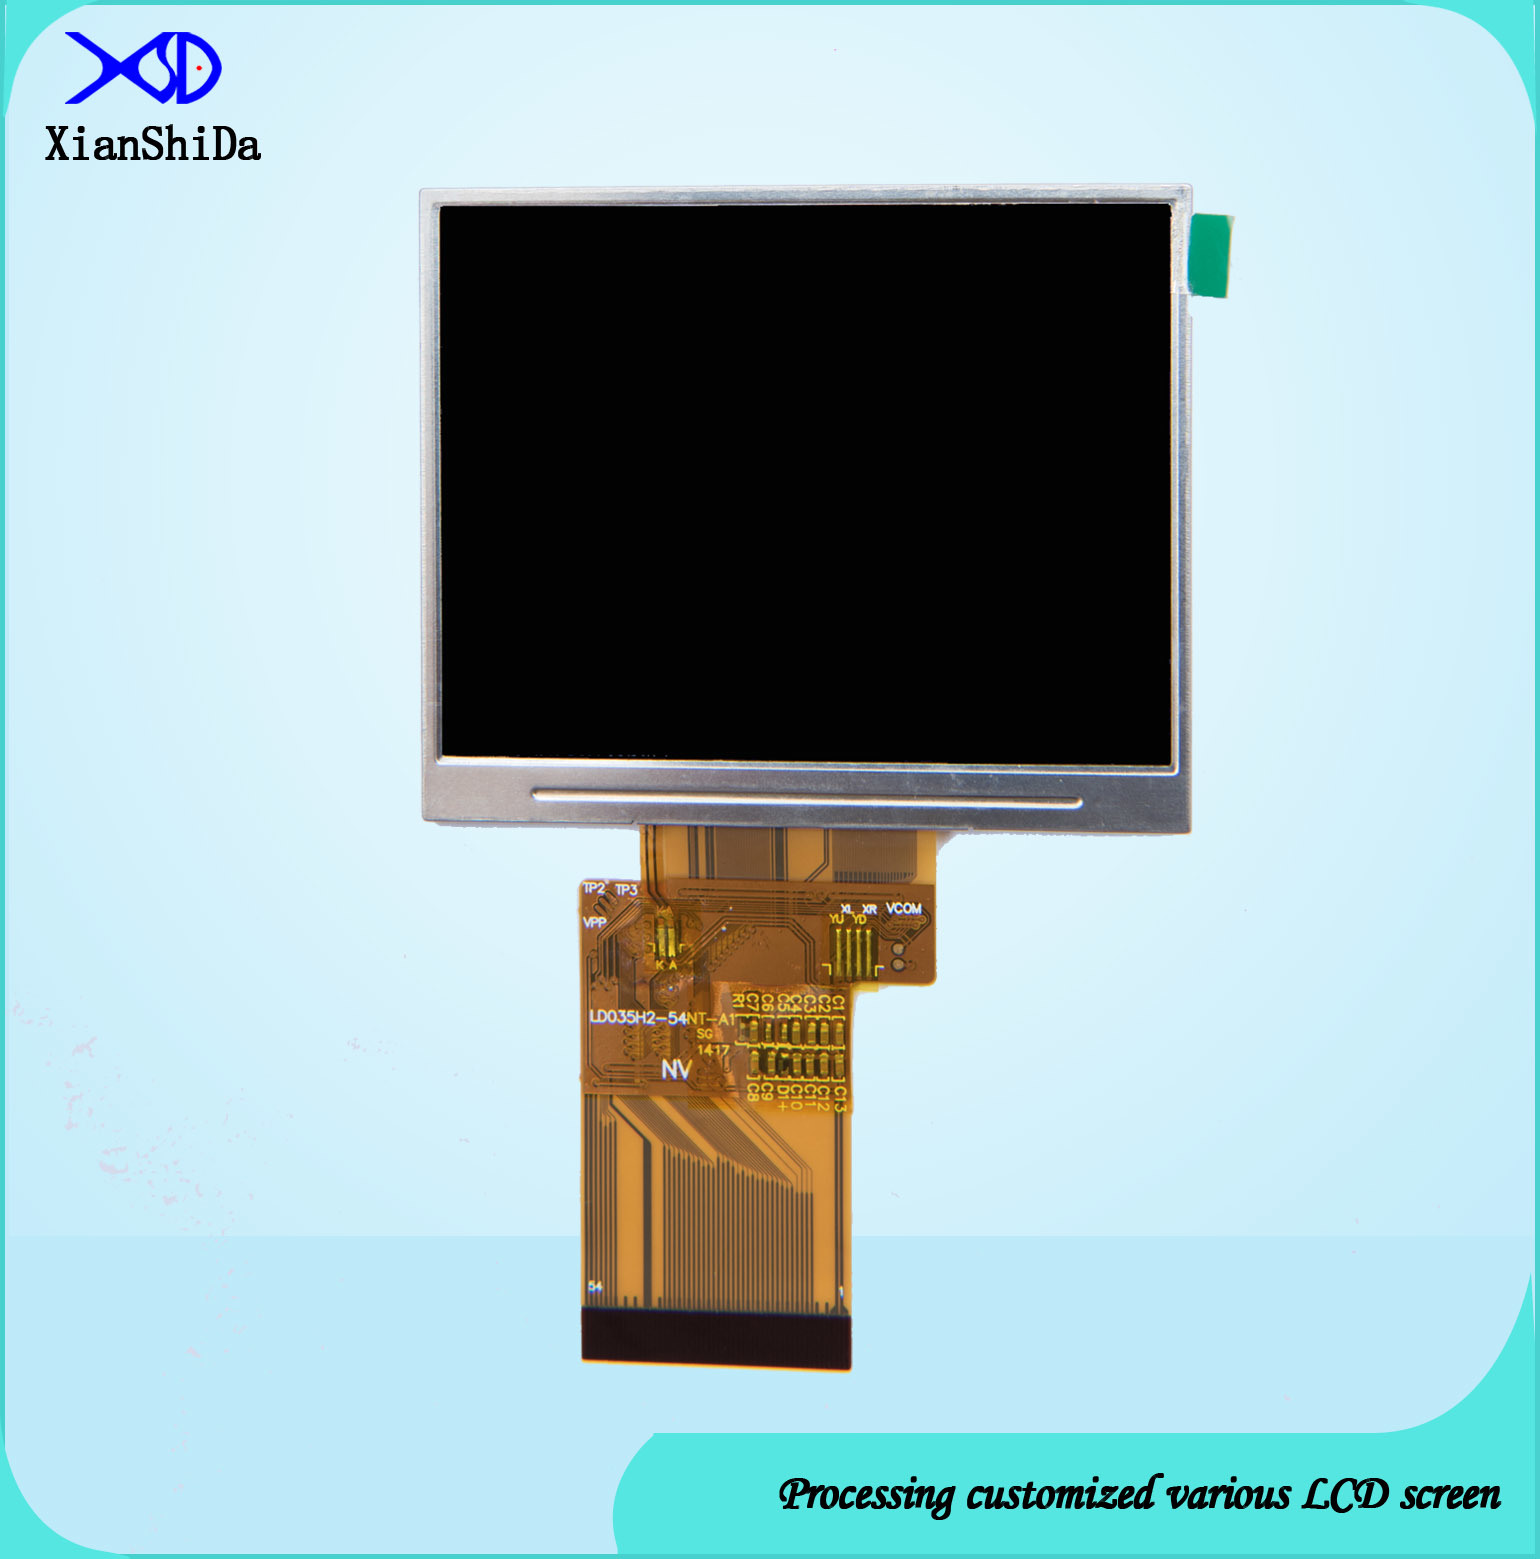 3.5 Inch LCD Screen 320 (RGB) × 240resolution LED Display with 550CD/M2 Brightness